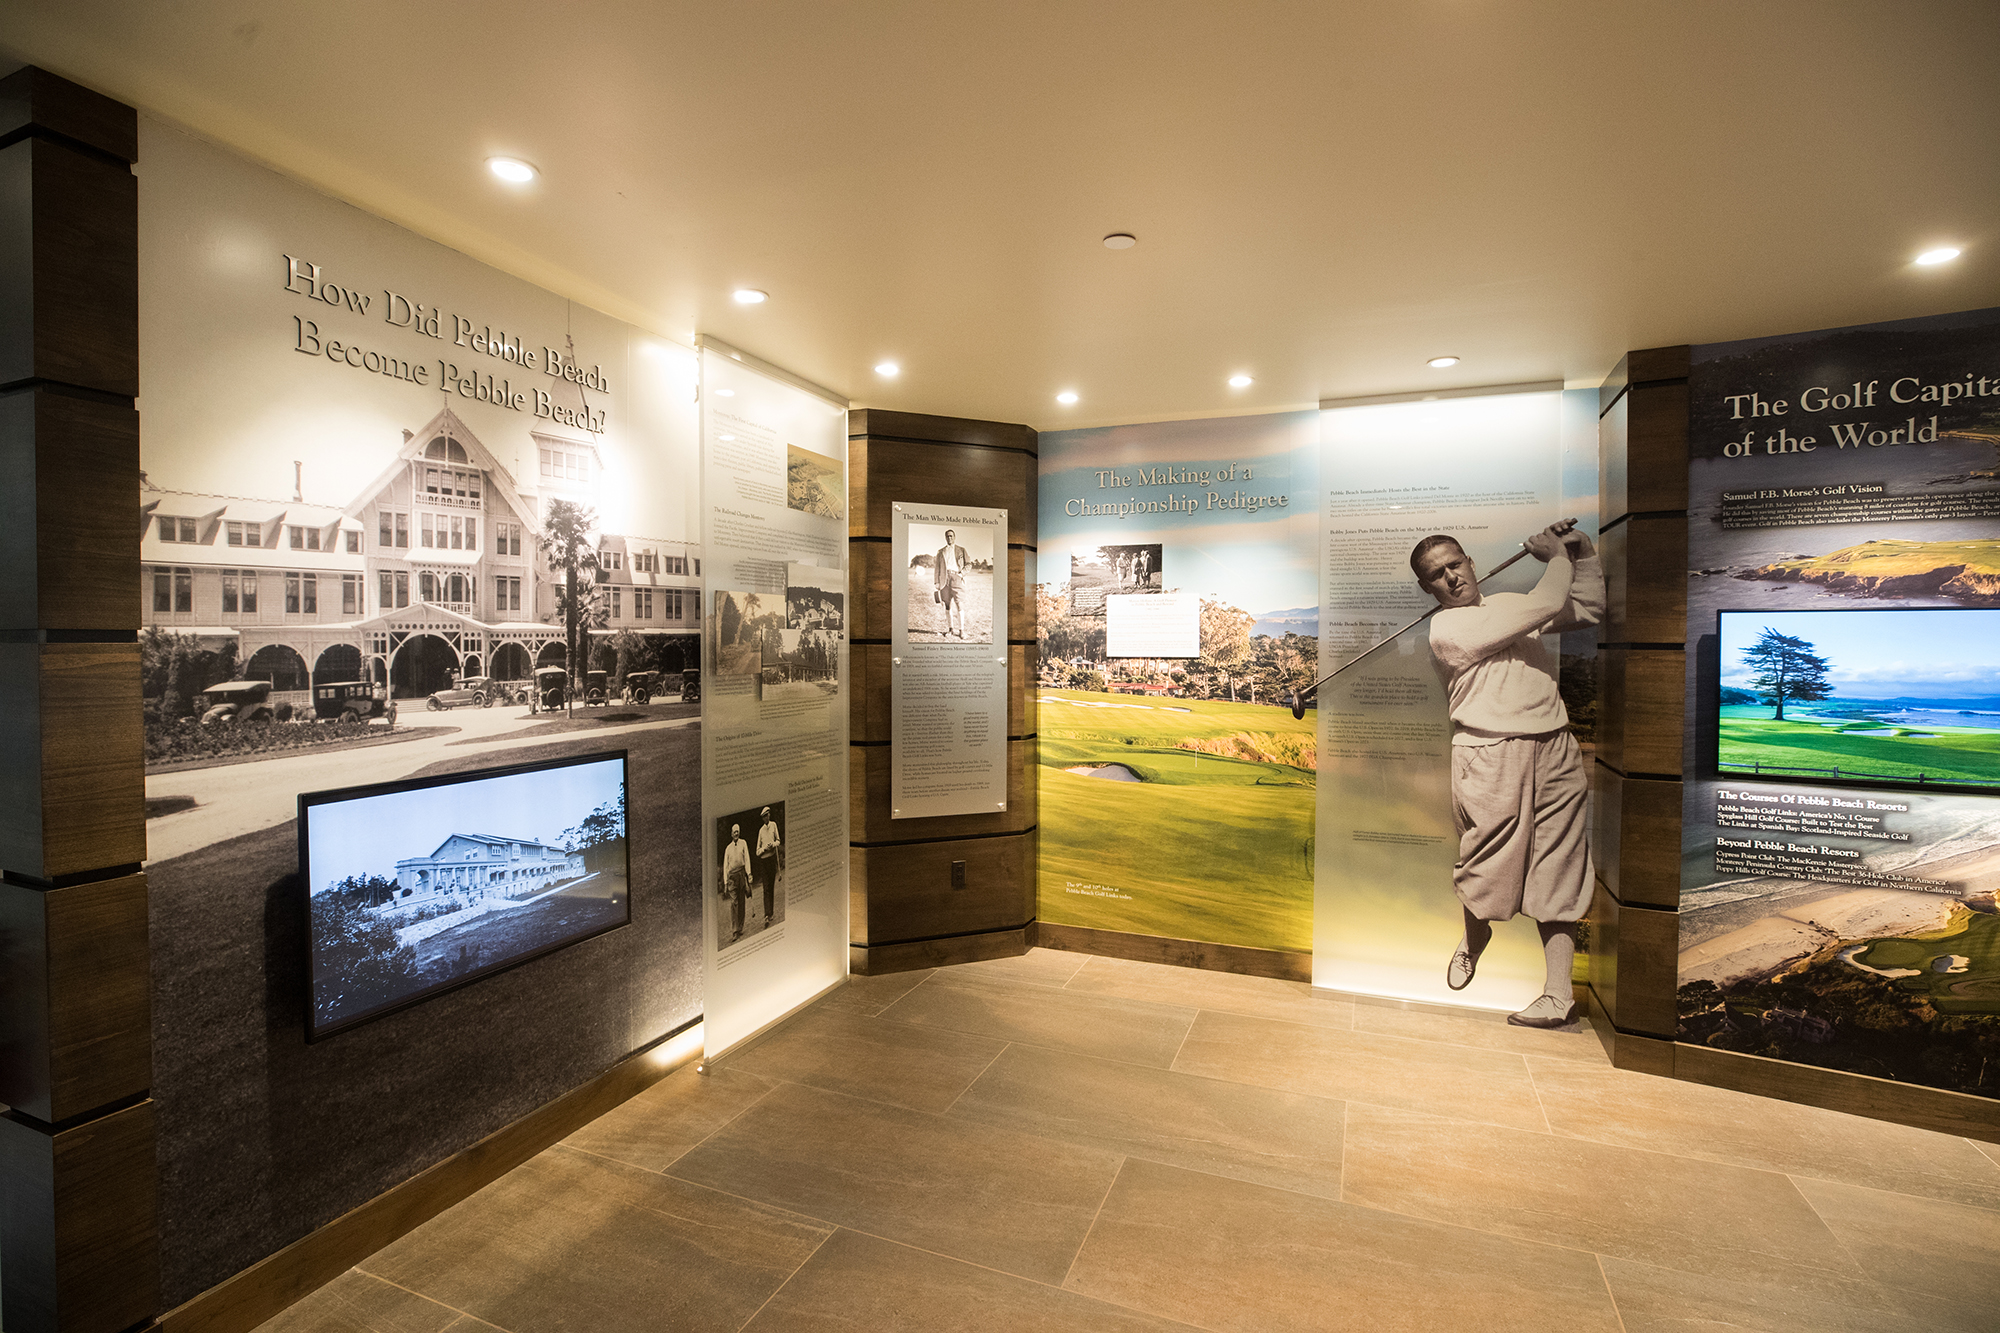 Visitor Center - Making of Pebble Beach Display